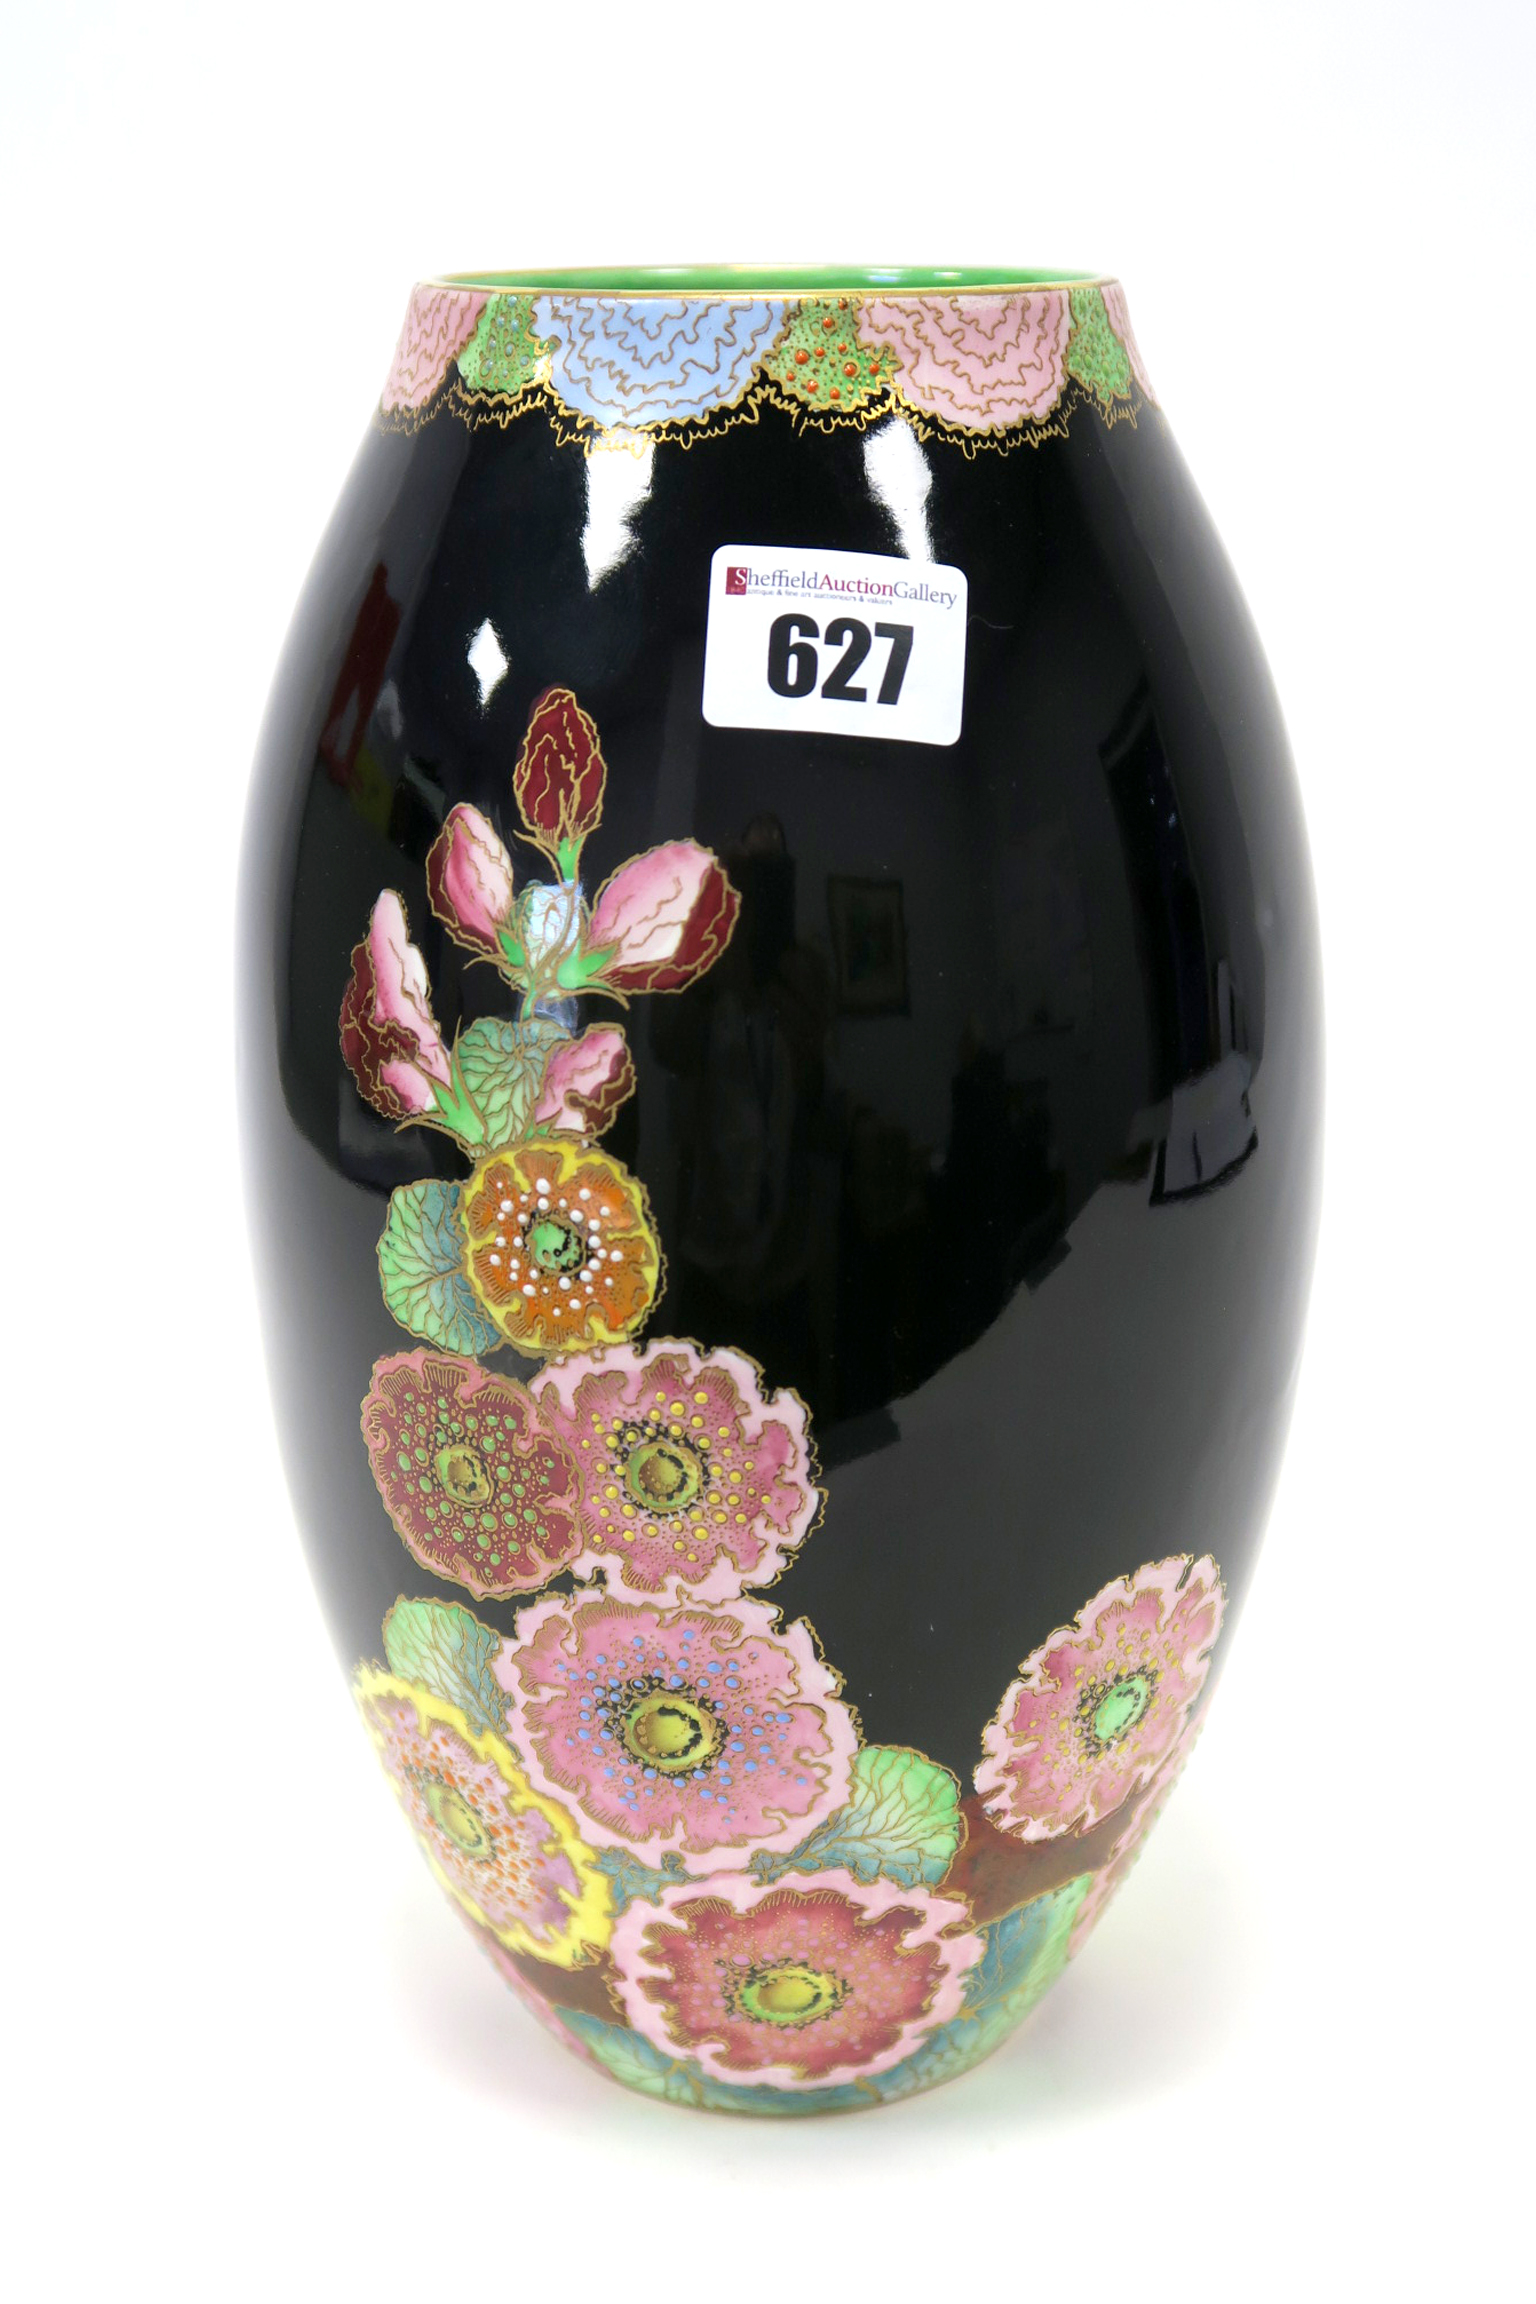 Lot 627 - A Carlton Ware Pottery Vase, of ovoid form, decorated in the 'Hollyhocks' pattern with colourful